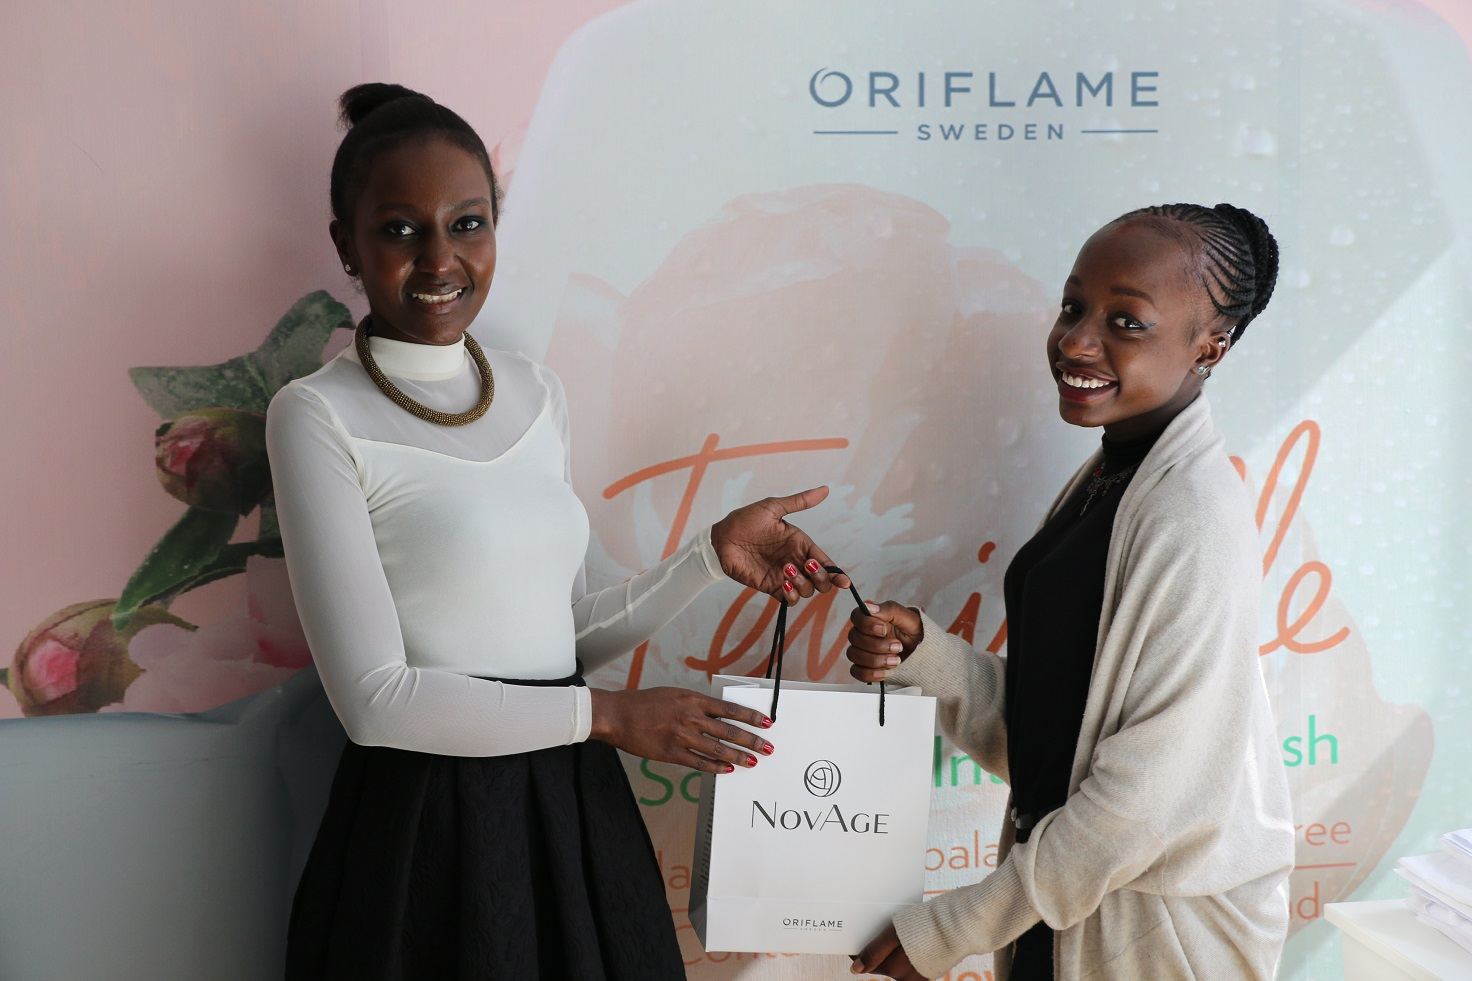 oriflame kenya skin care test kit